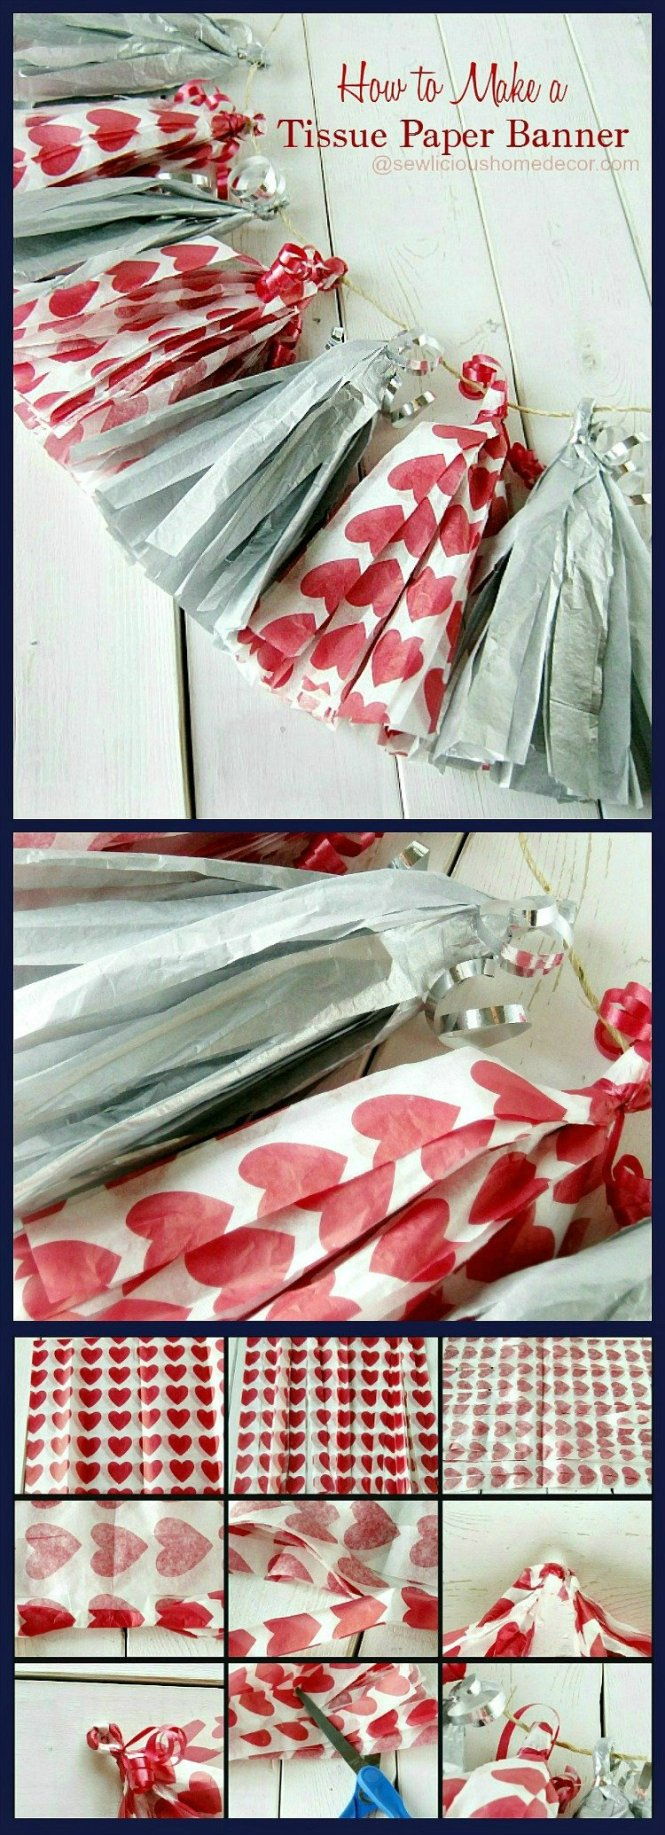 How To Make Tissue Paper Party Banners Tutorial sewlicioushomedecor.com